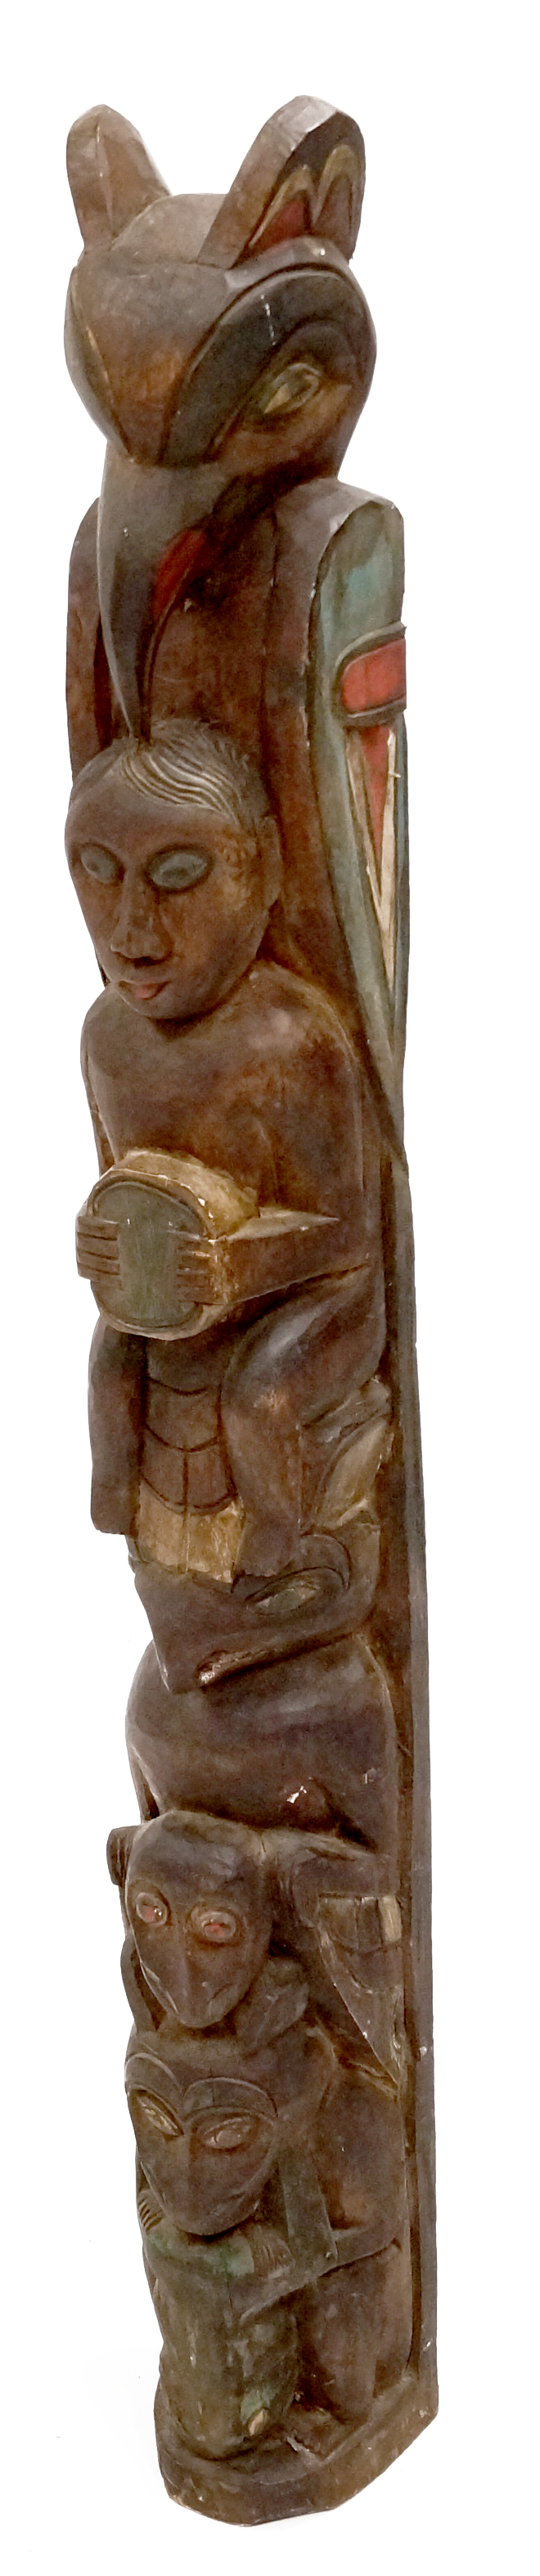 NORTHWEST COAST STYLE CARVED AND PAINTED WOOD TOTEM. HEIGHT 44